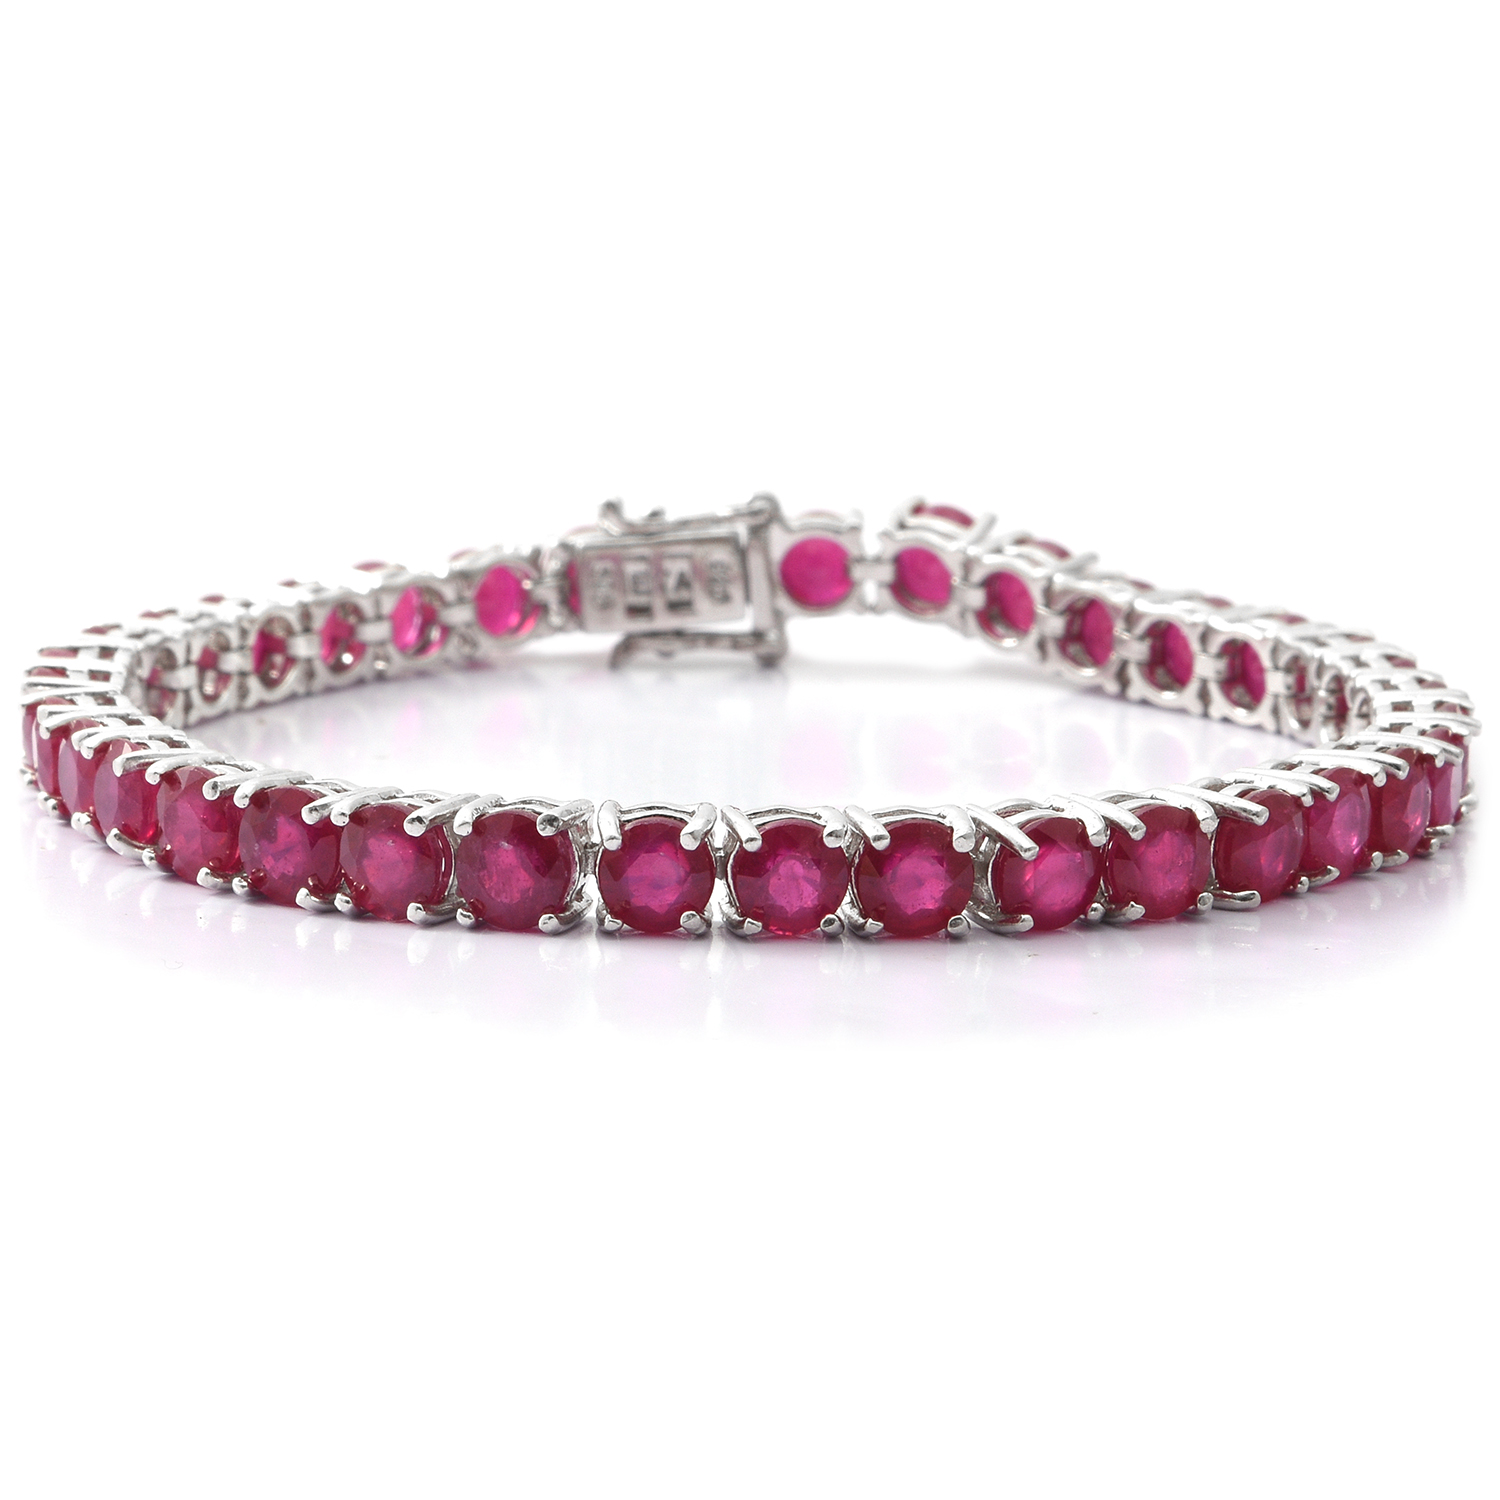 b diamond to bracelets jewelers shop add halo wishlist loading antique bracelet real maddaloni ruby inspired